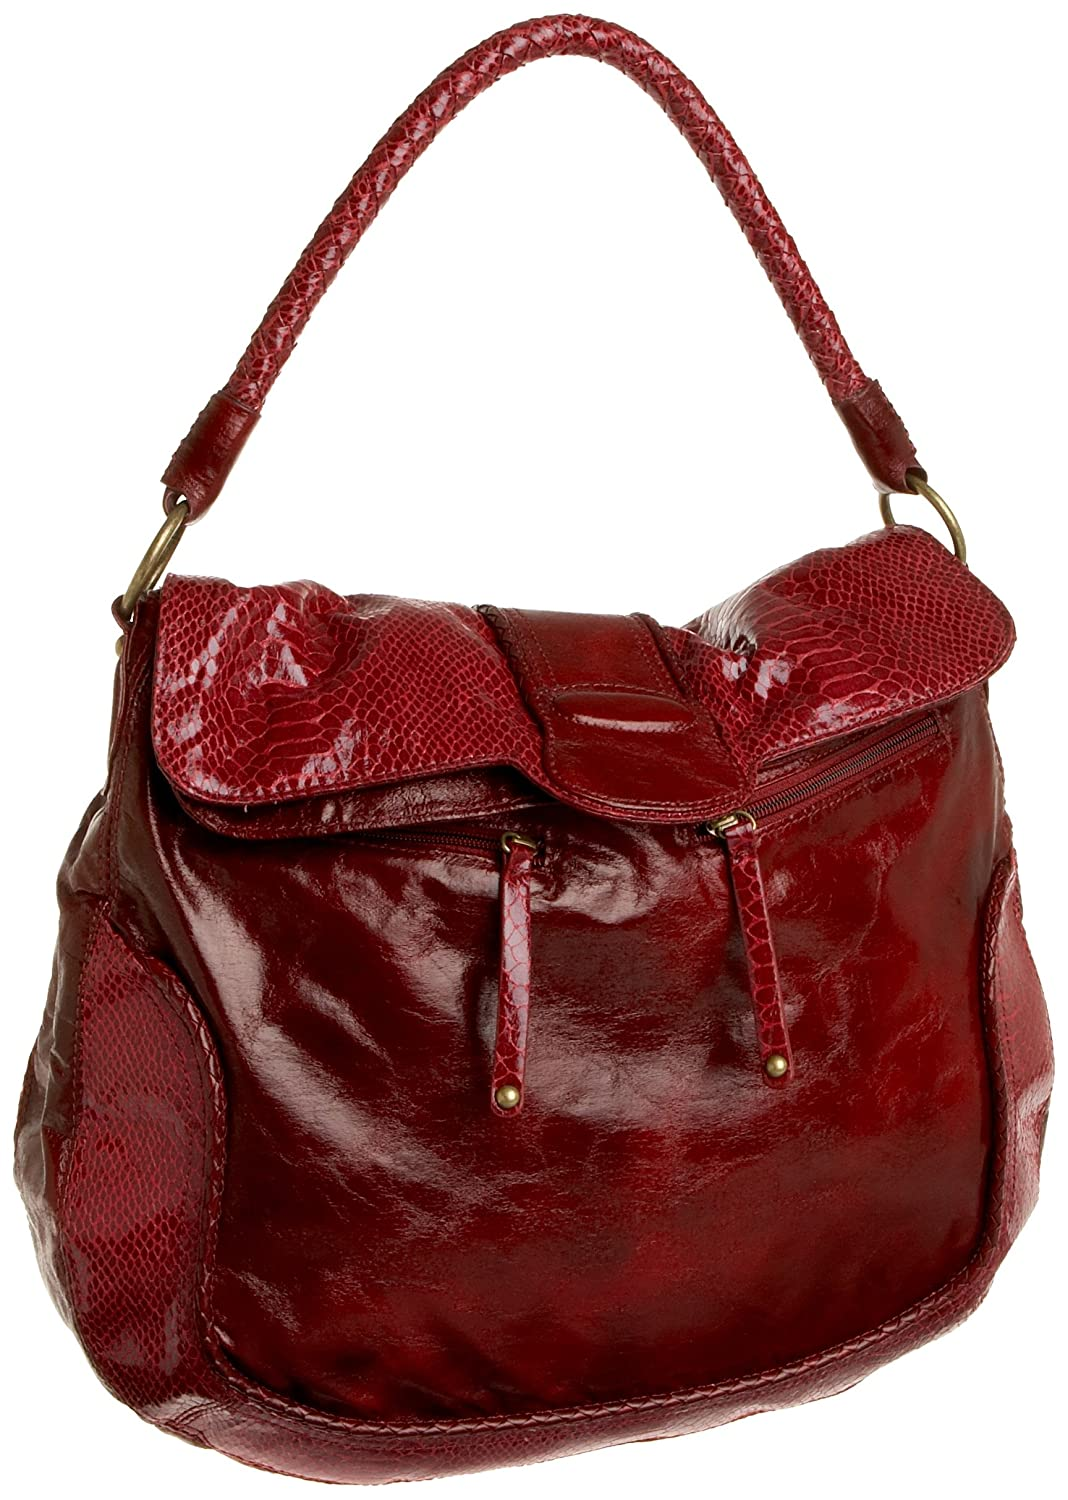 SR SQUARED by Sondra Roberts Distressed Flap Hobo from endless.com